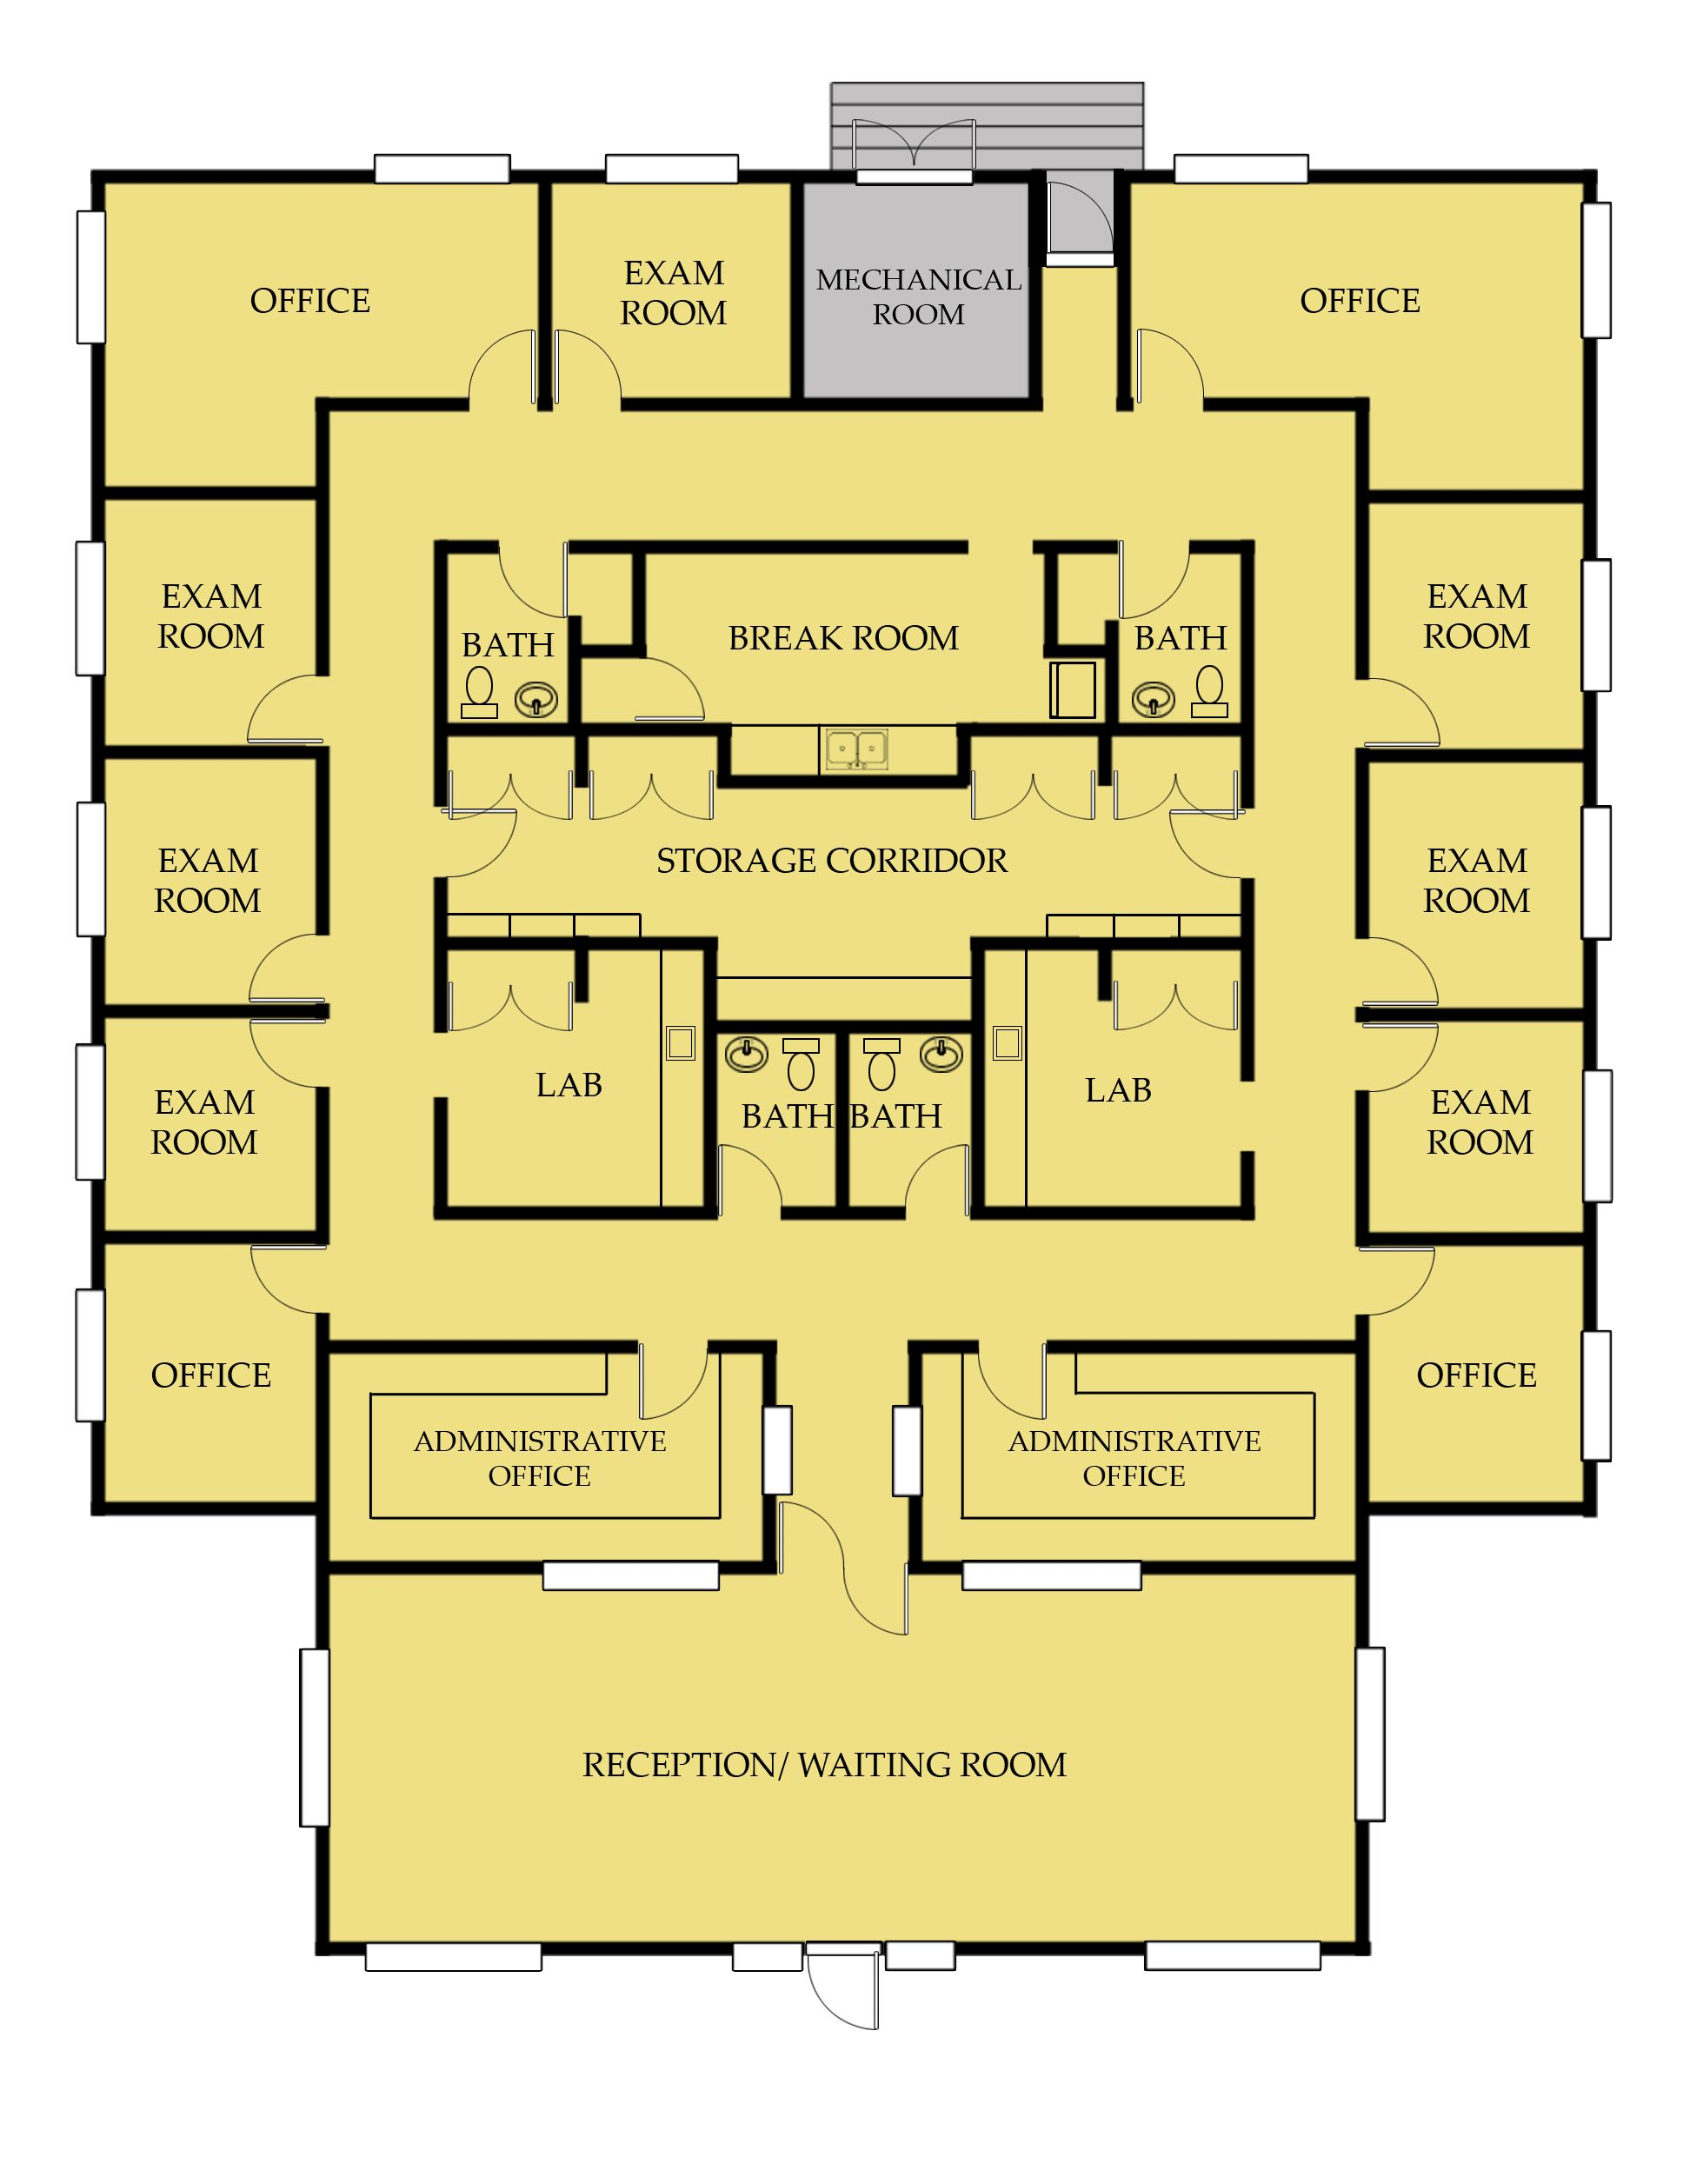 Medical Office Building Floor Plans Medical Pinterest